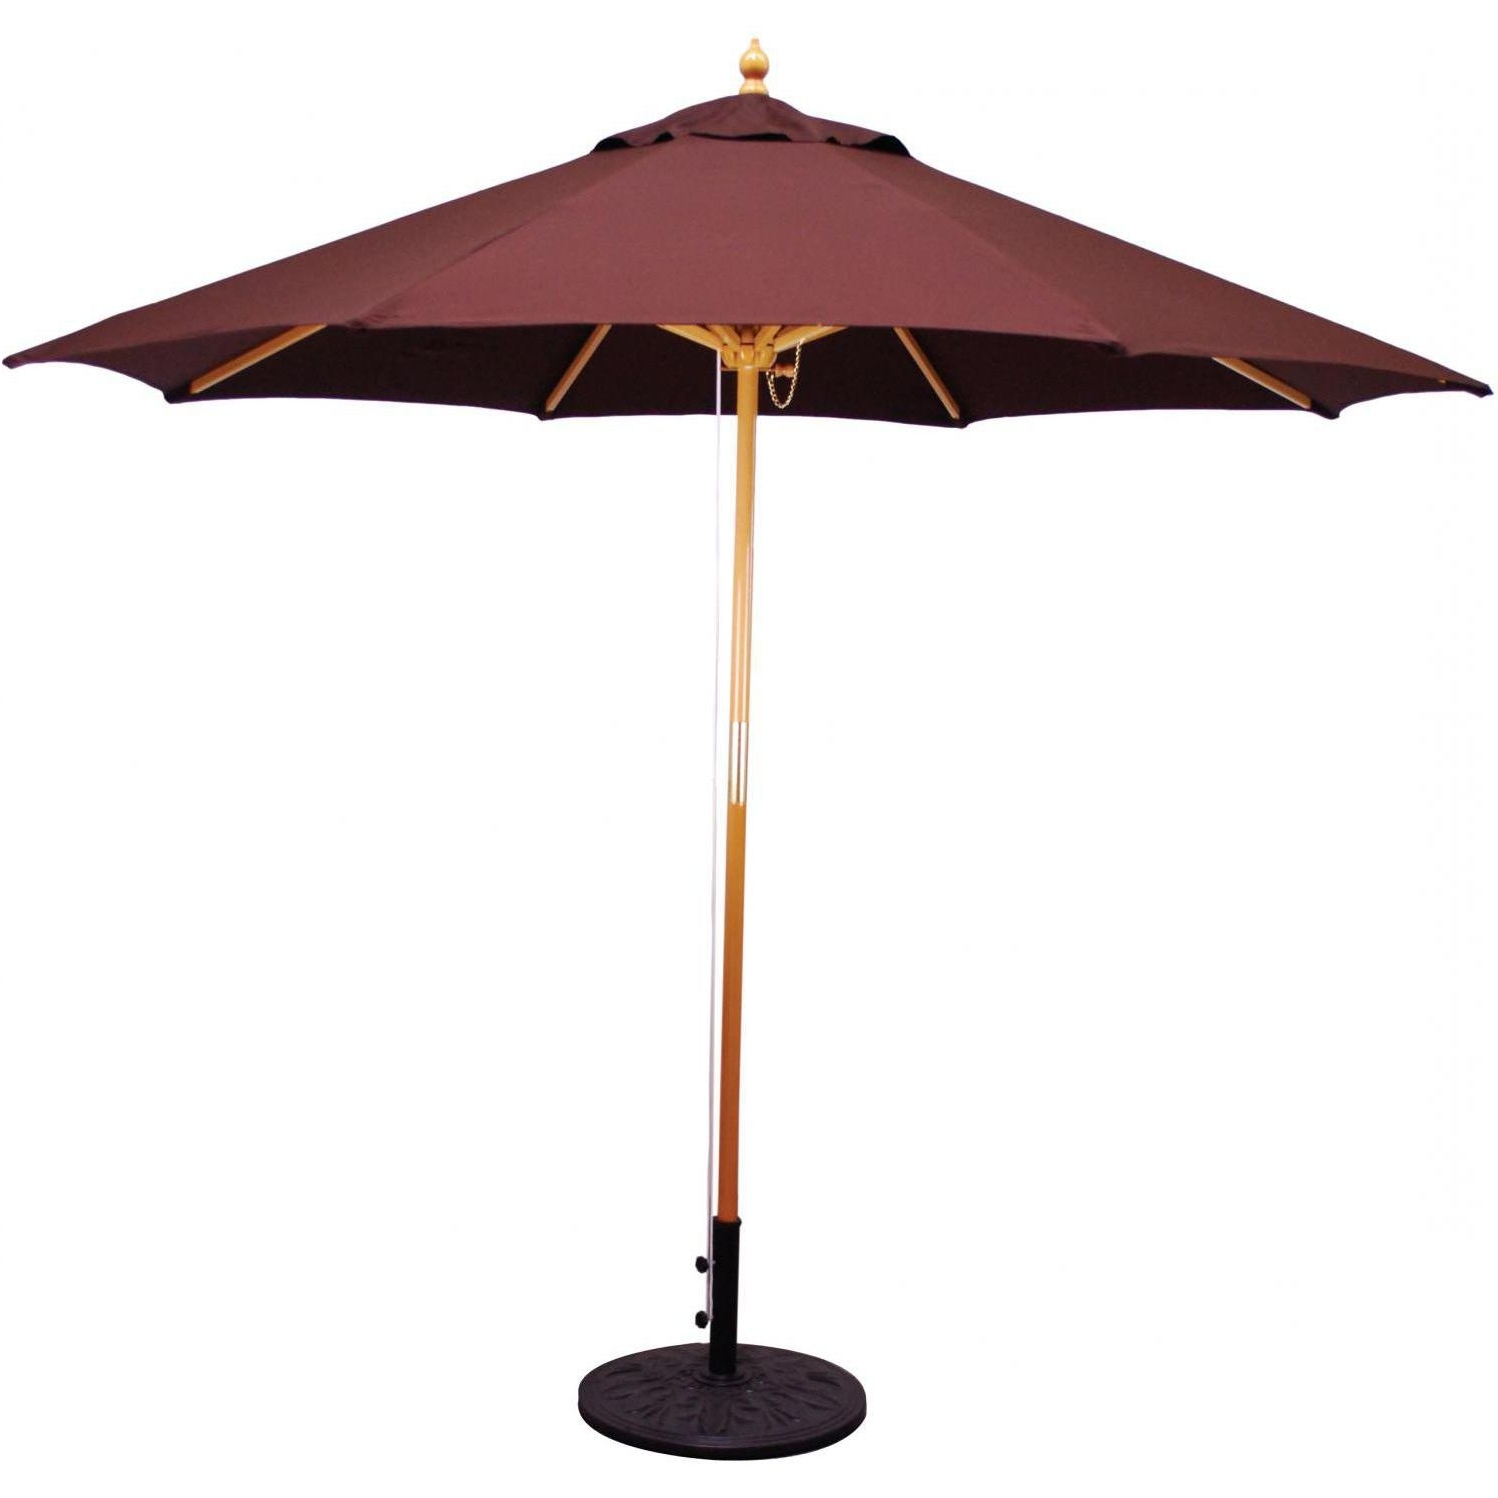 Galtech 9 Ft Wood Patio Fascinating Wooden Patio Umbrellas – Home With Popular Wooden Patio Umbrellas (Gallery 9 of 20)